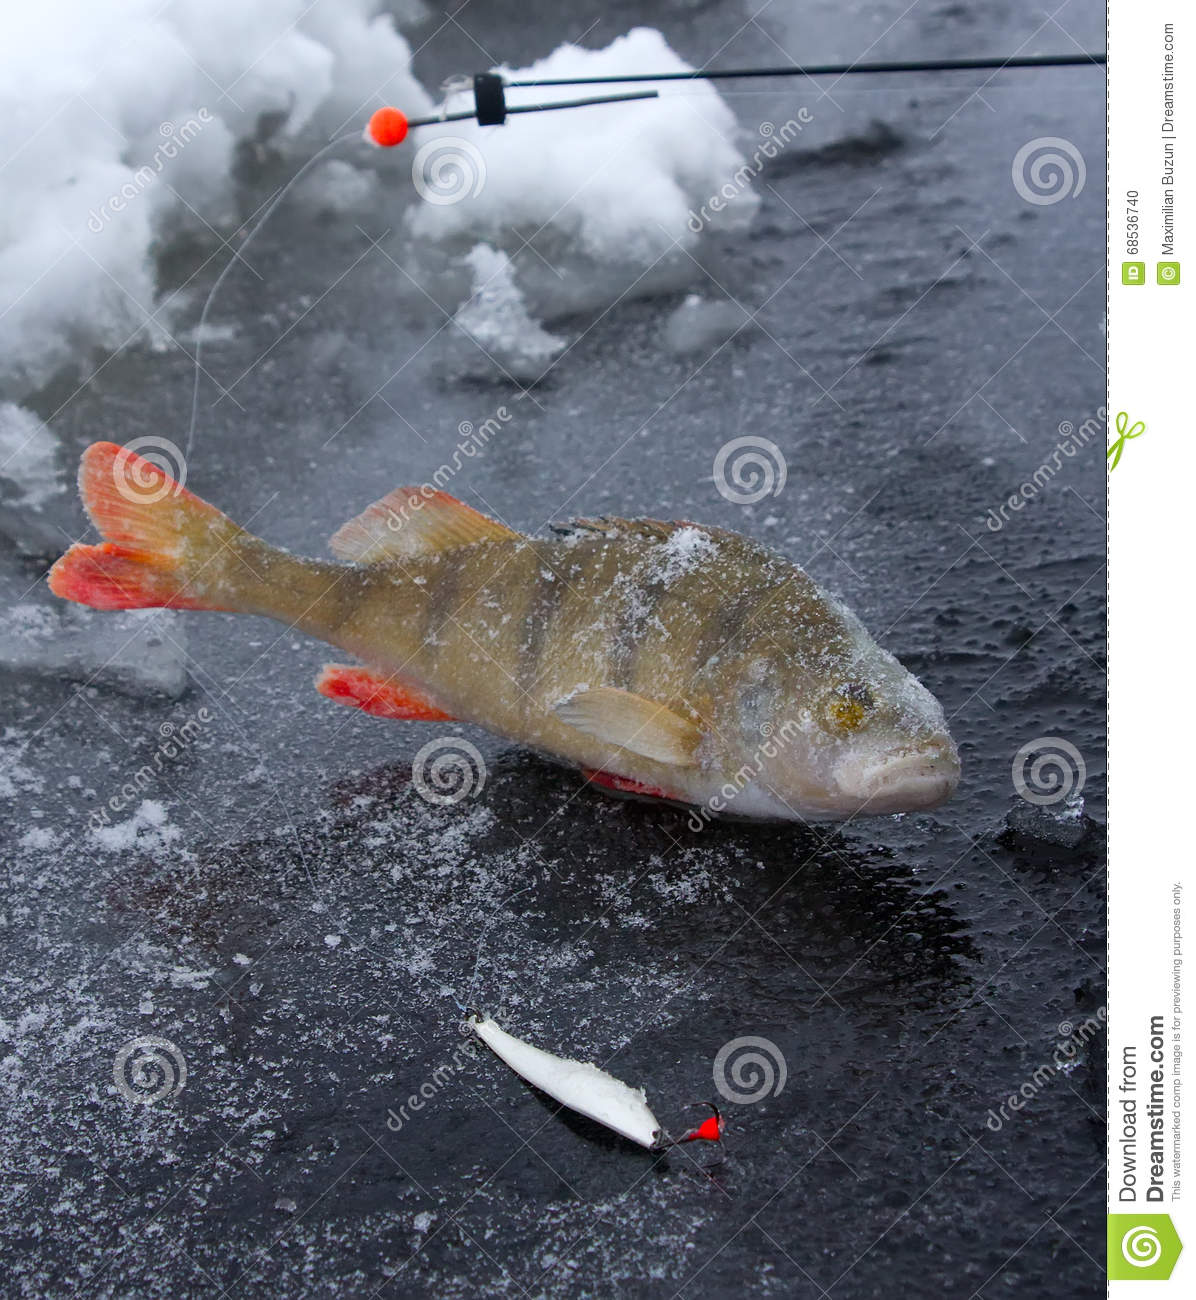 Perch Ice Fishing In Scandinavia Stock Photo - Image of